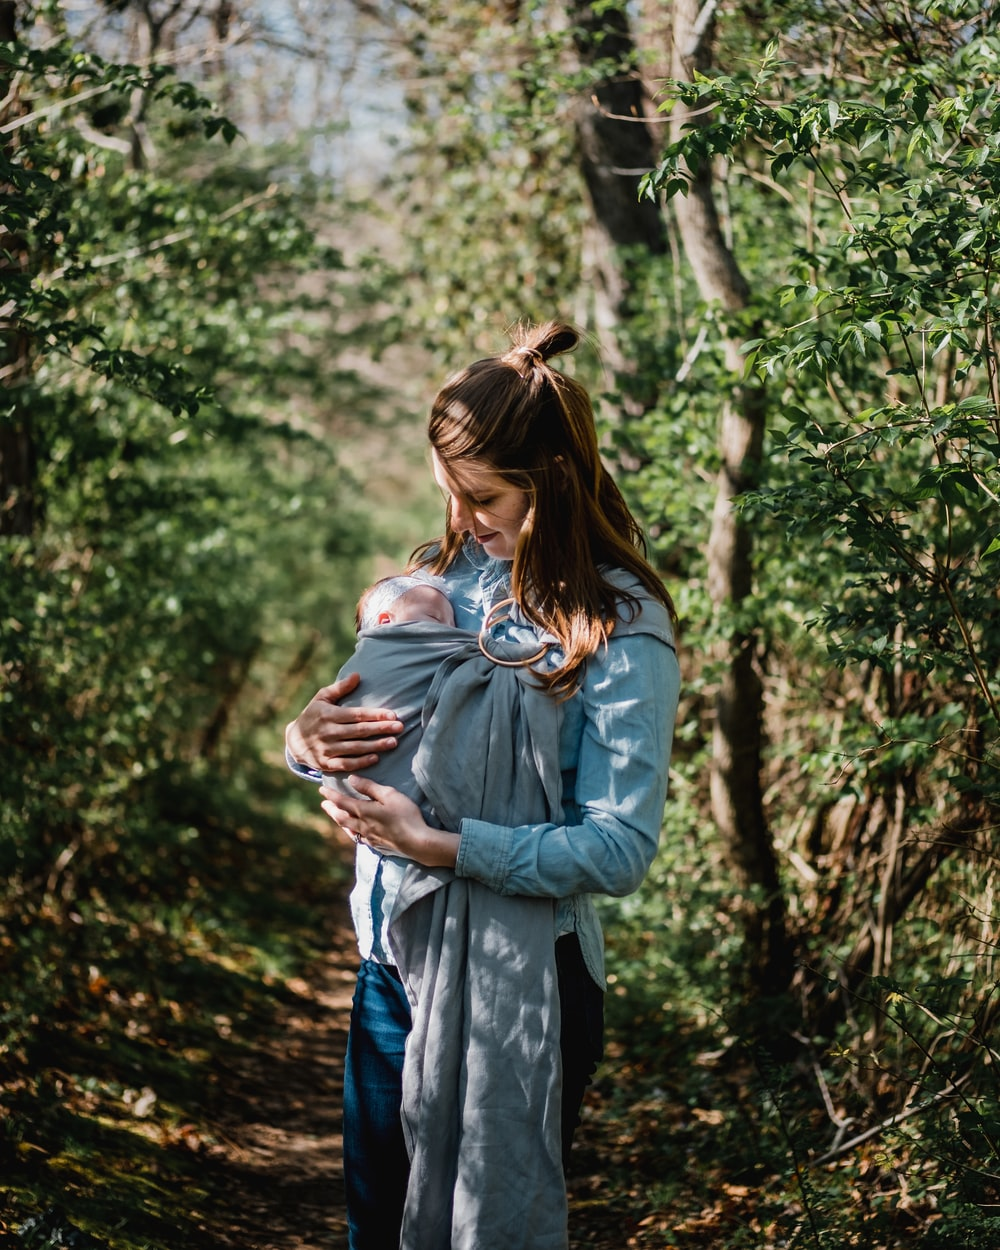 woman carrying child while standing near trees at daytime